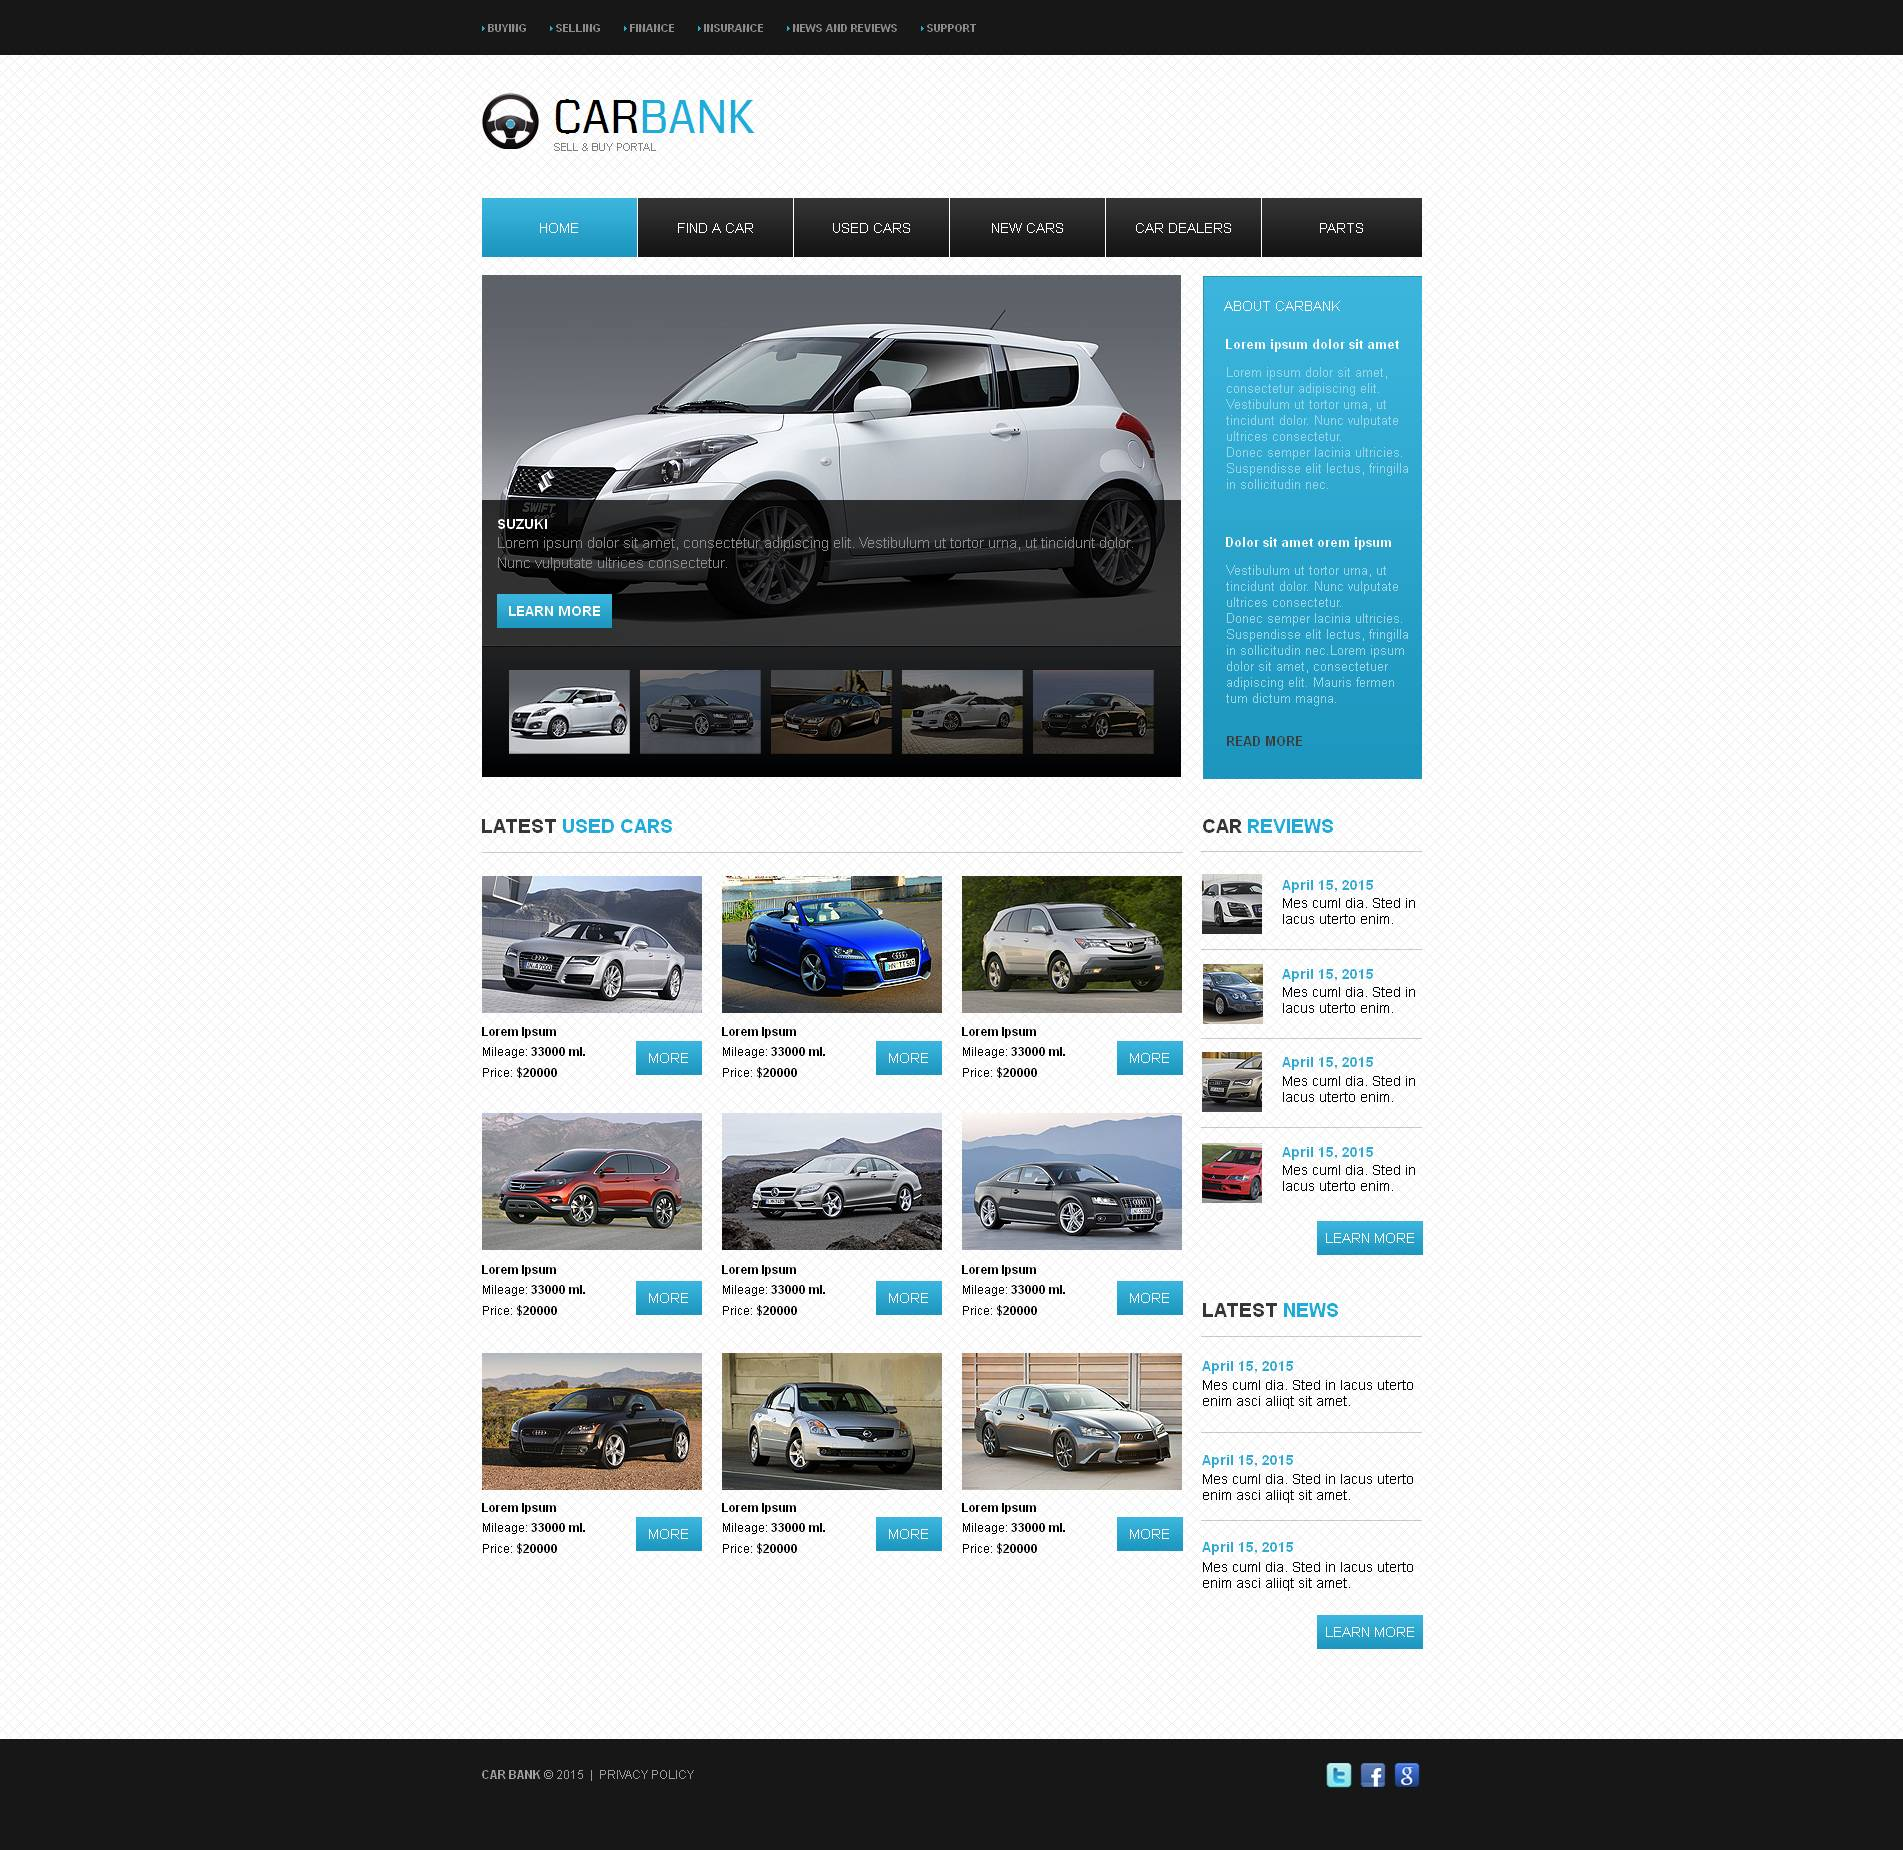 Car Dealer Templates | TemplateMonster